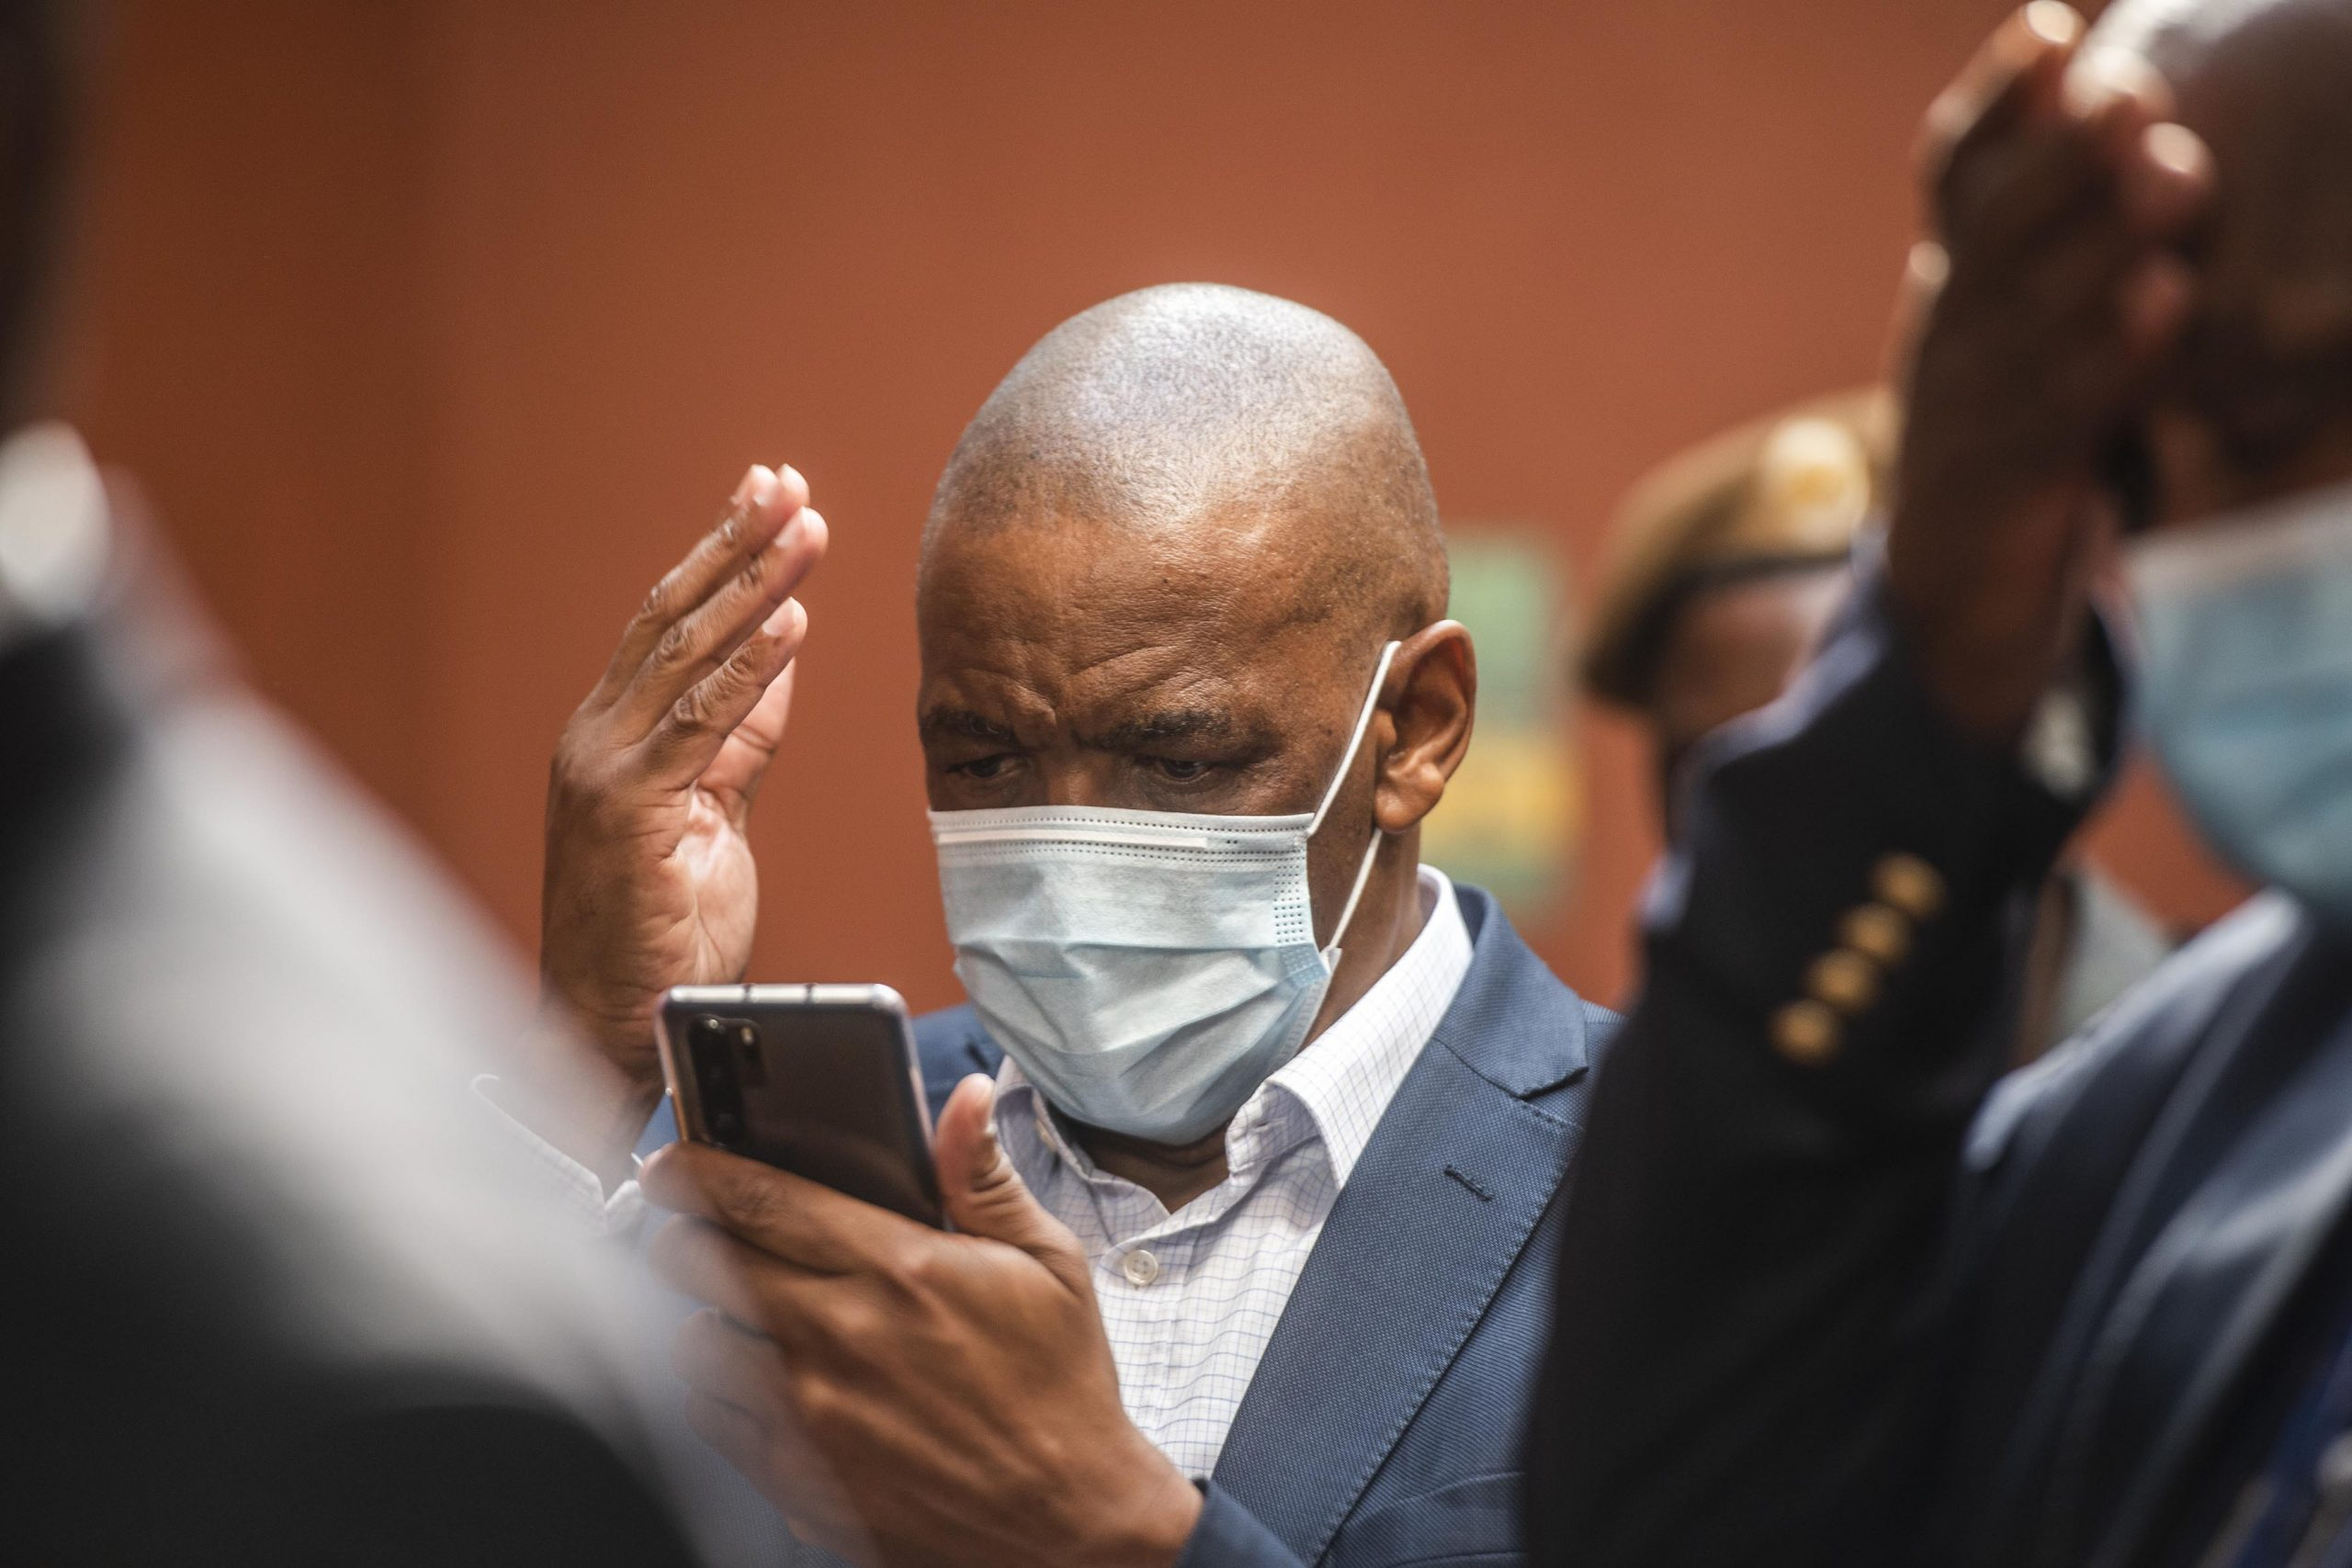 19 February 2021: Then ANC secretary general Ace Magashule at the Bloemfontein Magistrate's Court, with co-accused. He was granted bail in the case of the multimillion rand asbestos contract in the Free State. (Photo by Gallo Images/ Alet Pretorius)